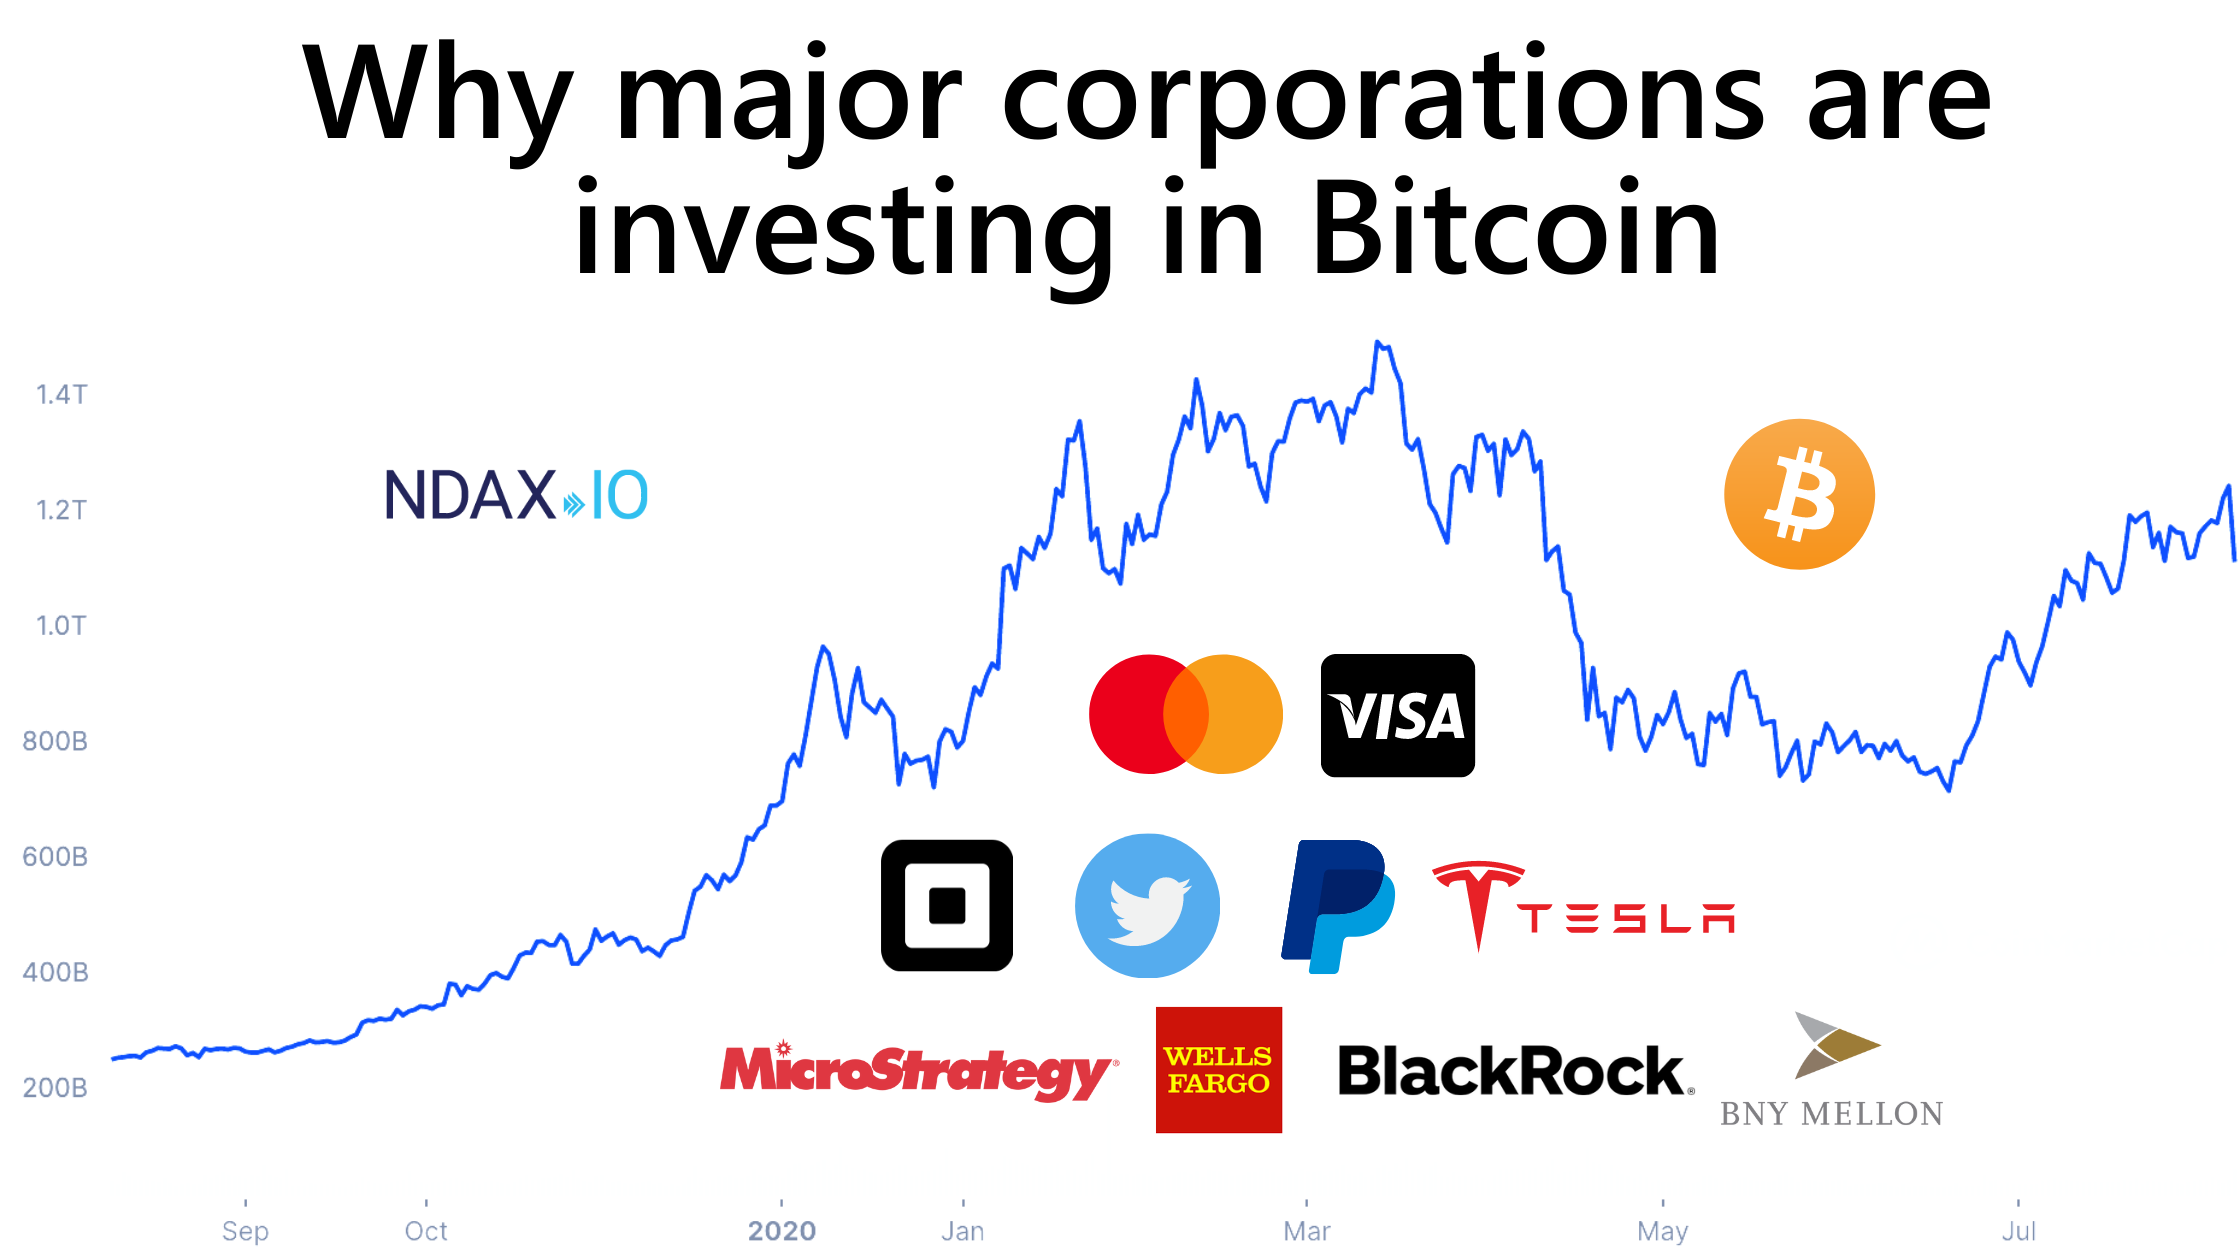 Why Major Corporations are Investing in Bitcoin